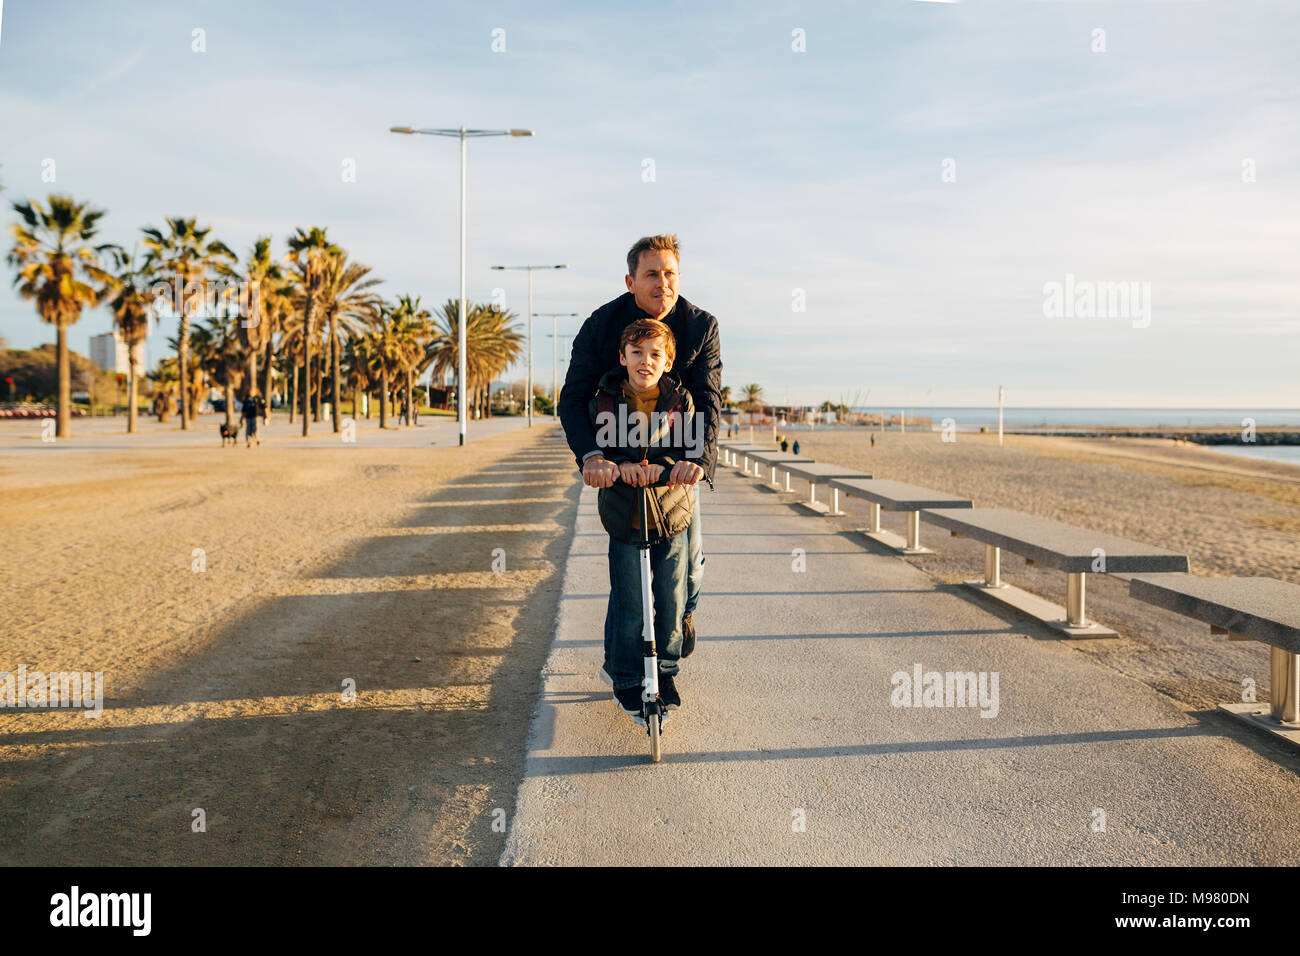 Father and son riding scooter on beach promenade at sunset - Stock Image